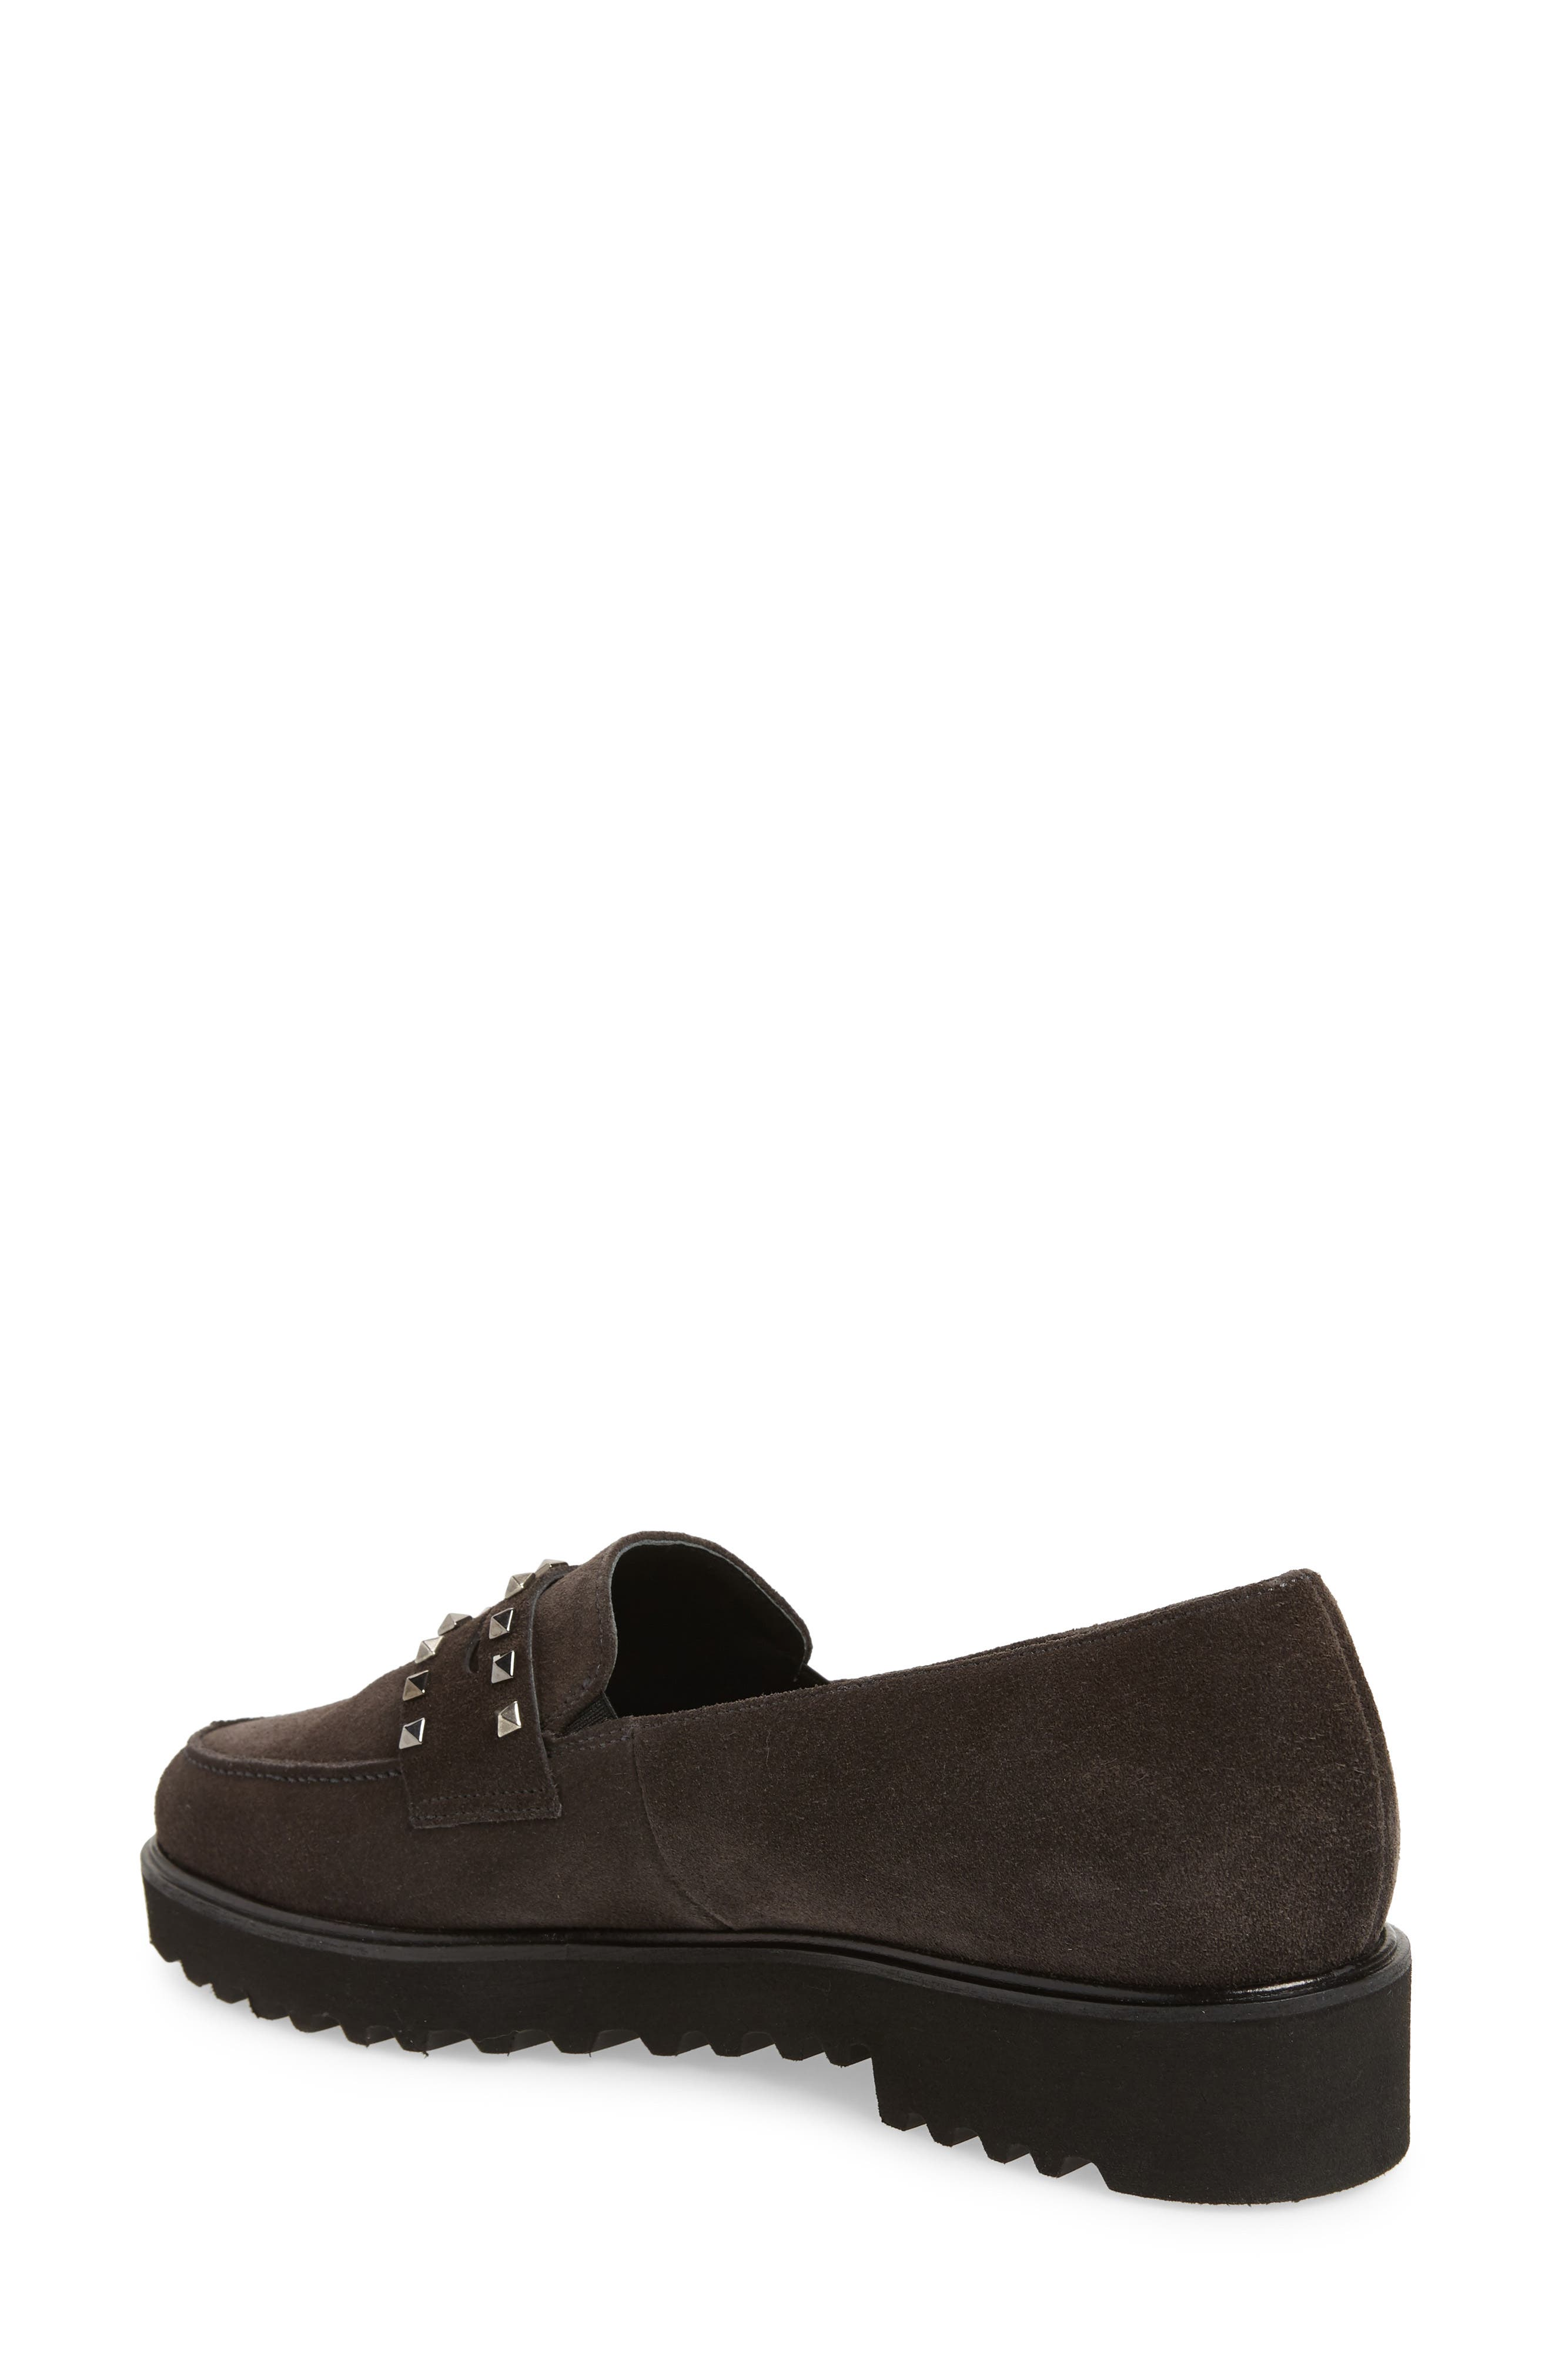 Sofia Loafer,                             Alternate thumbnail 2, color,                             ANTHRACITE SUEDE